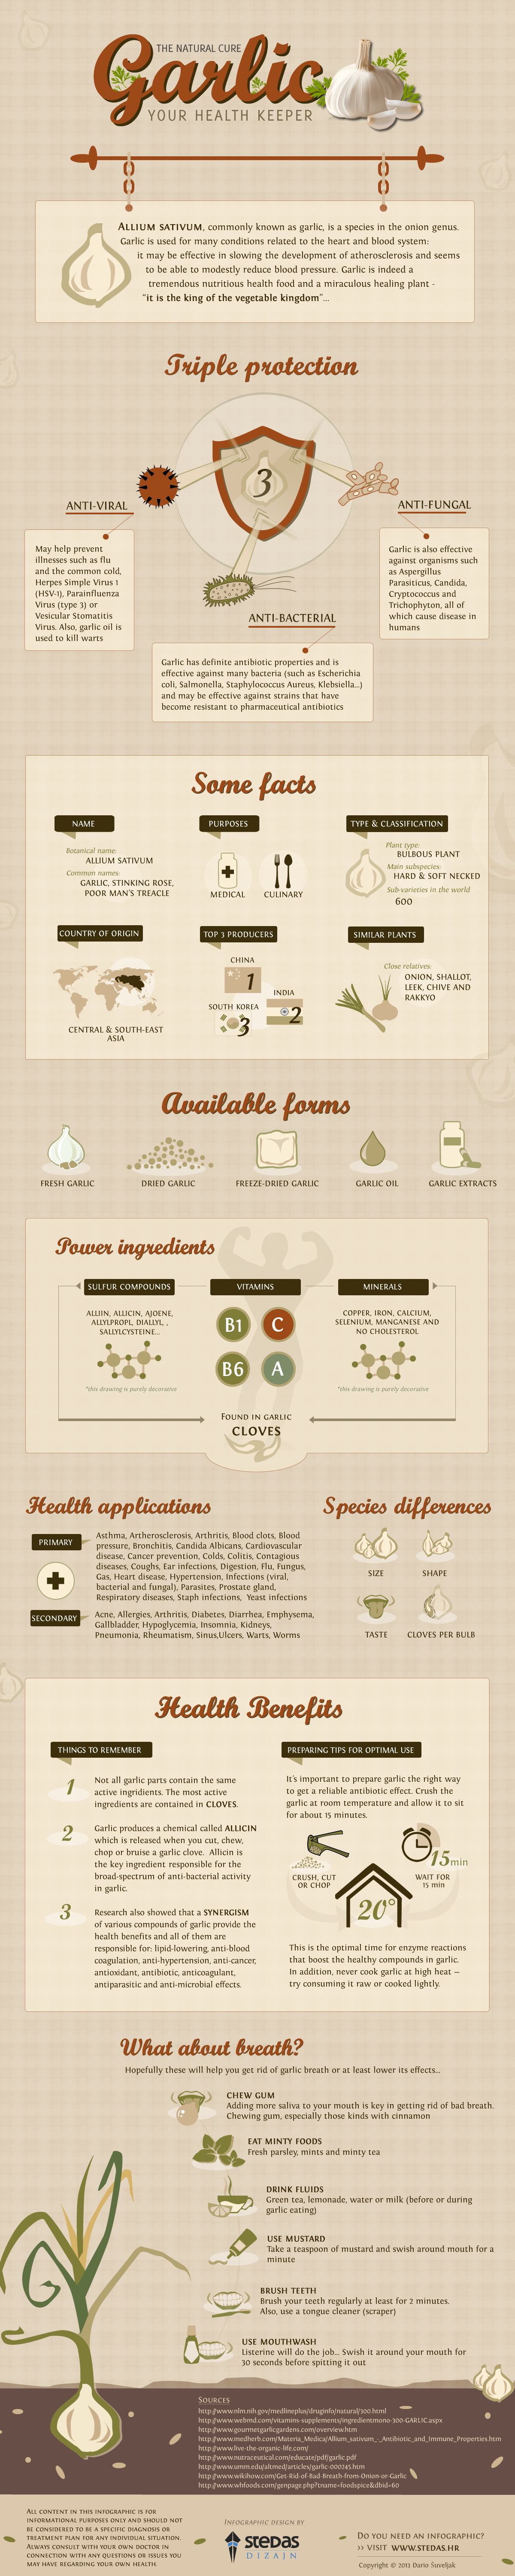 Garlic: The Miracle Health and Nutrition Food - Infographic